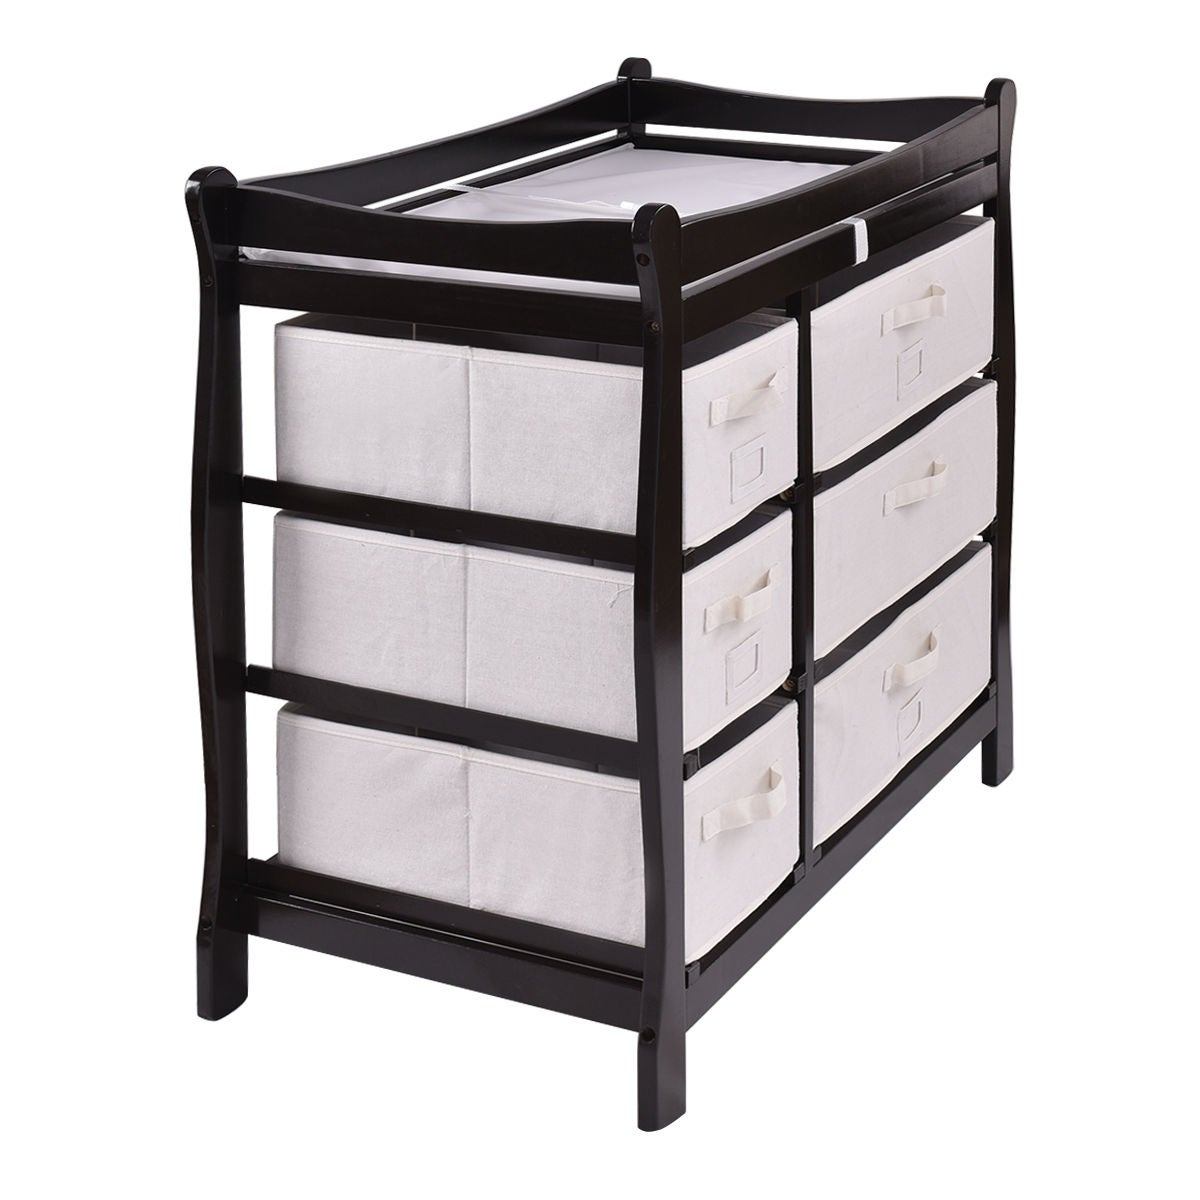 6fb8c663b9f7 Shop Costway Espresso Sleigh Style Baby Changing Table Diaper 6 Basket  Drawer Storage Nursery - Free Shipping Today - Overstock - 20476028